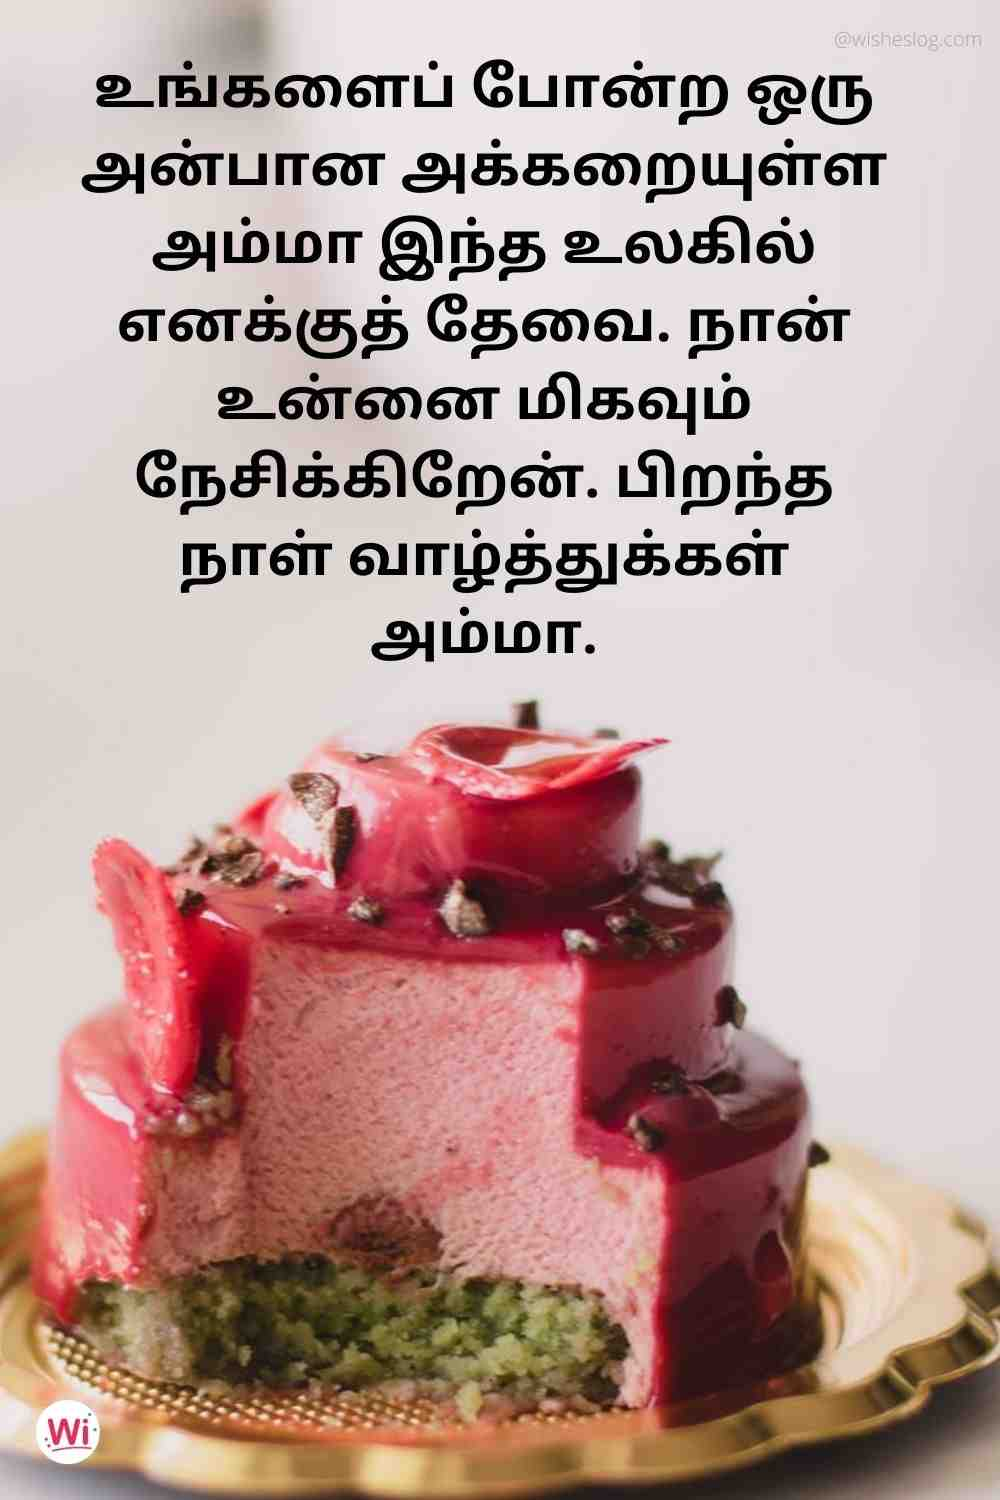 happy birthday wishes in tamil for mom